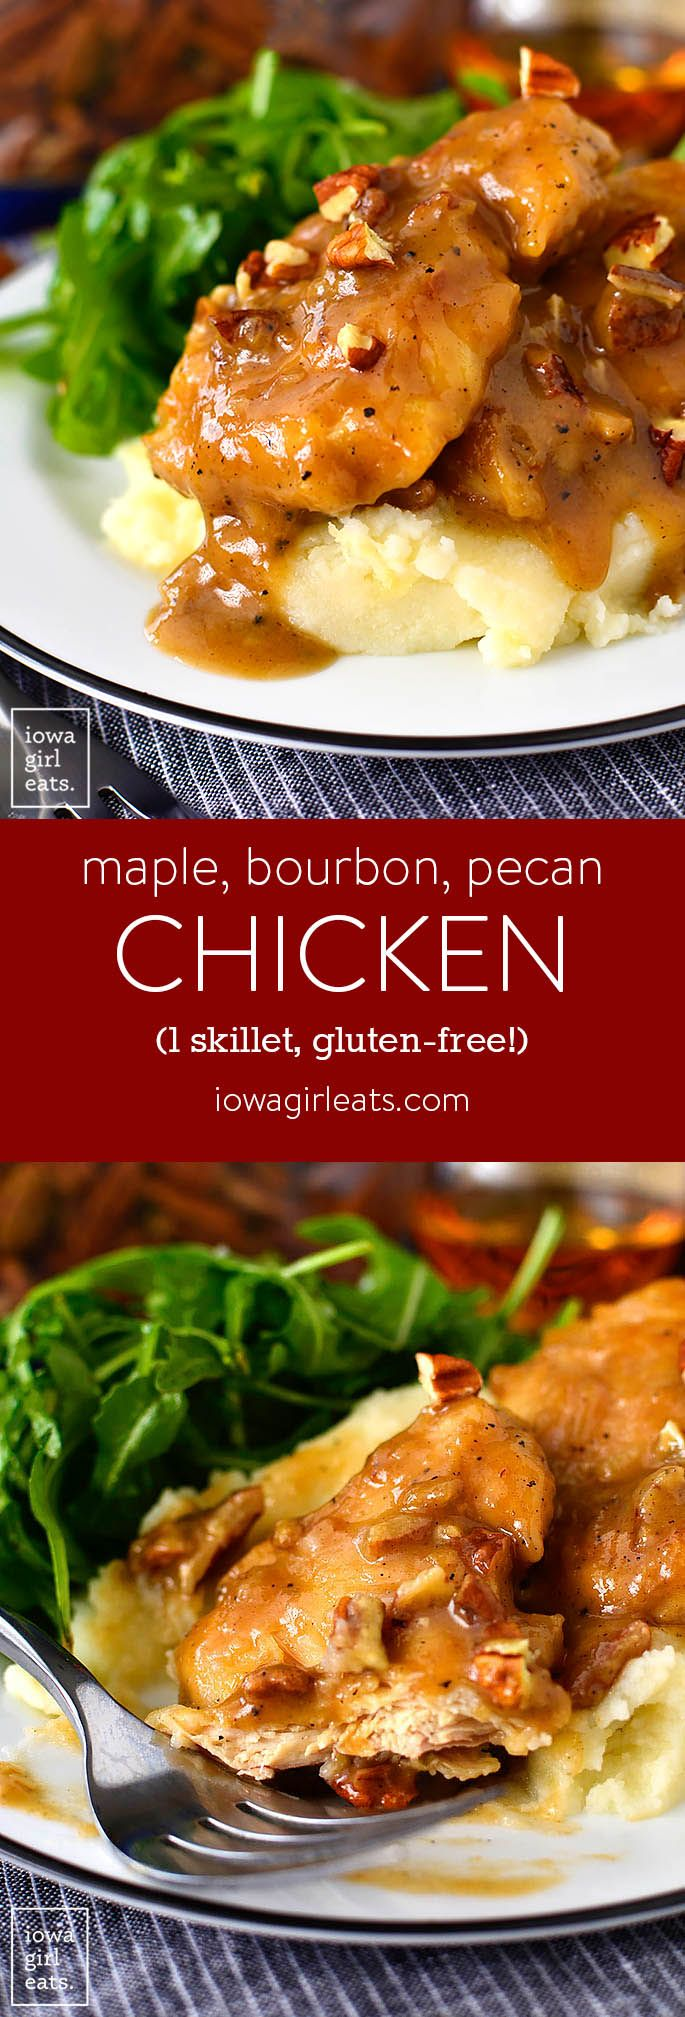 Maple Bourbon Pecan Chicken is a Heavenly, 1-skillet dinner recipe! Gluten-free, ready in just 20 minutes, and made with pantry staples. | iowagirleats.com #thinkfisher